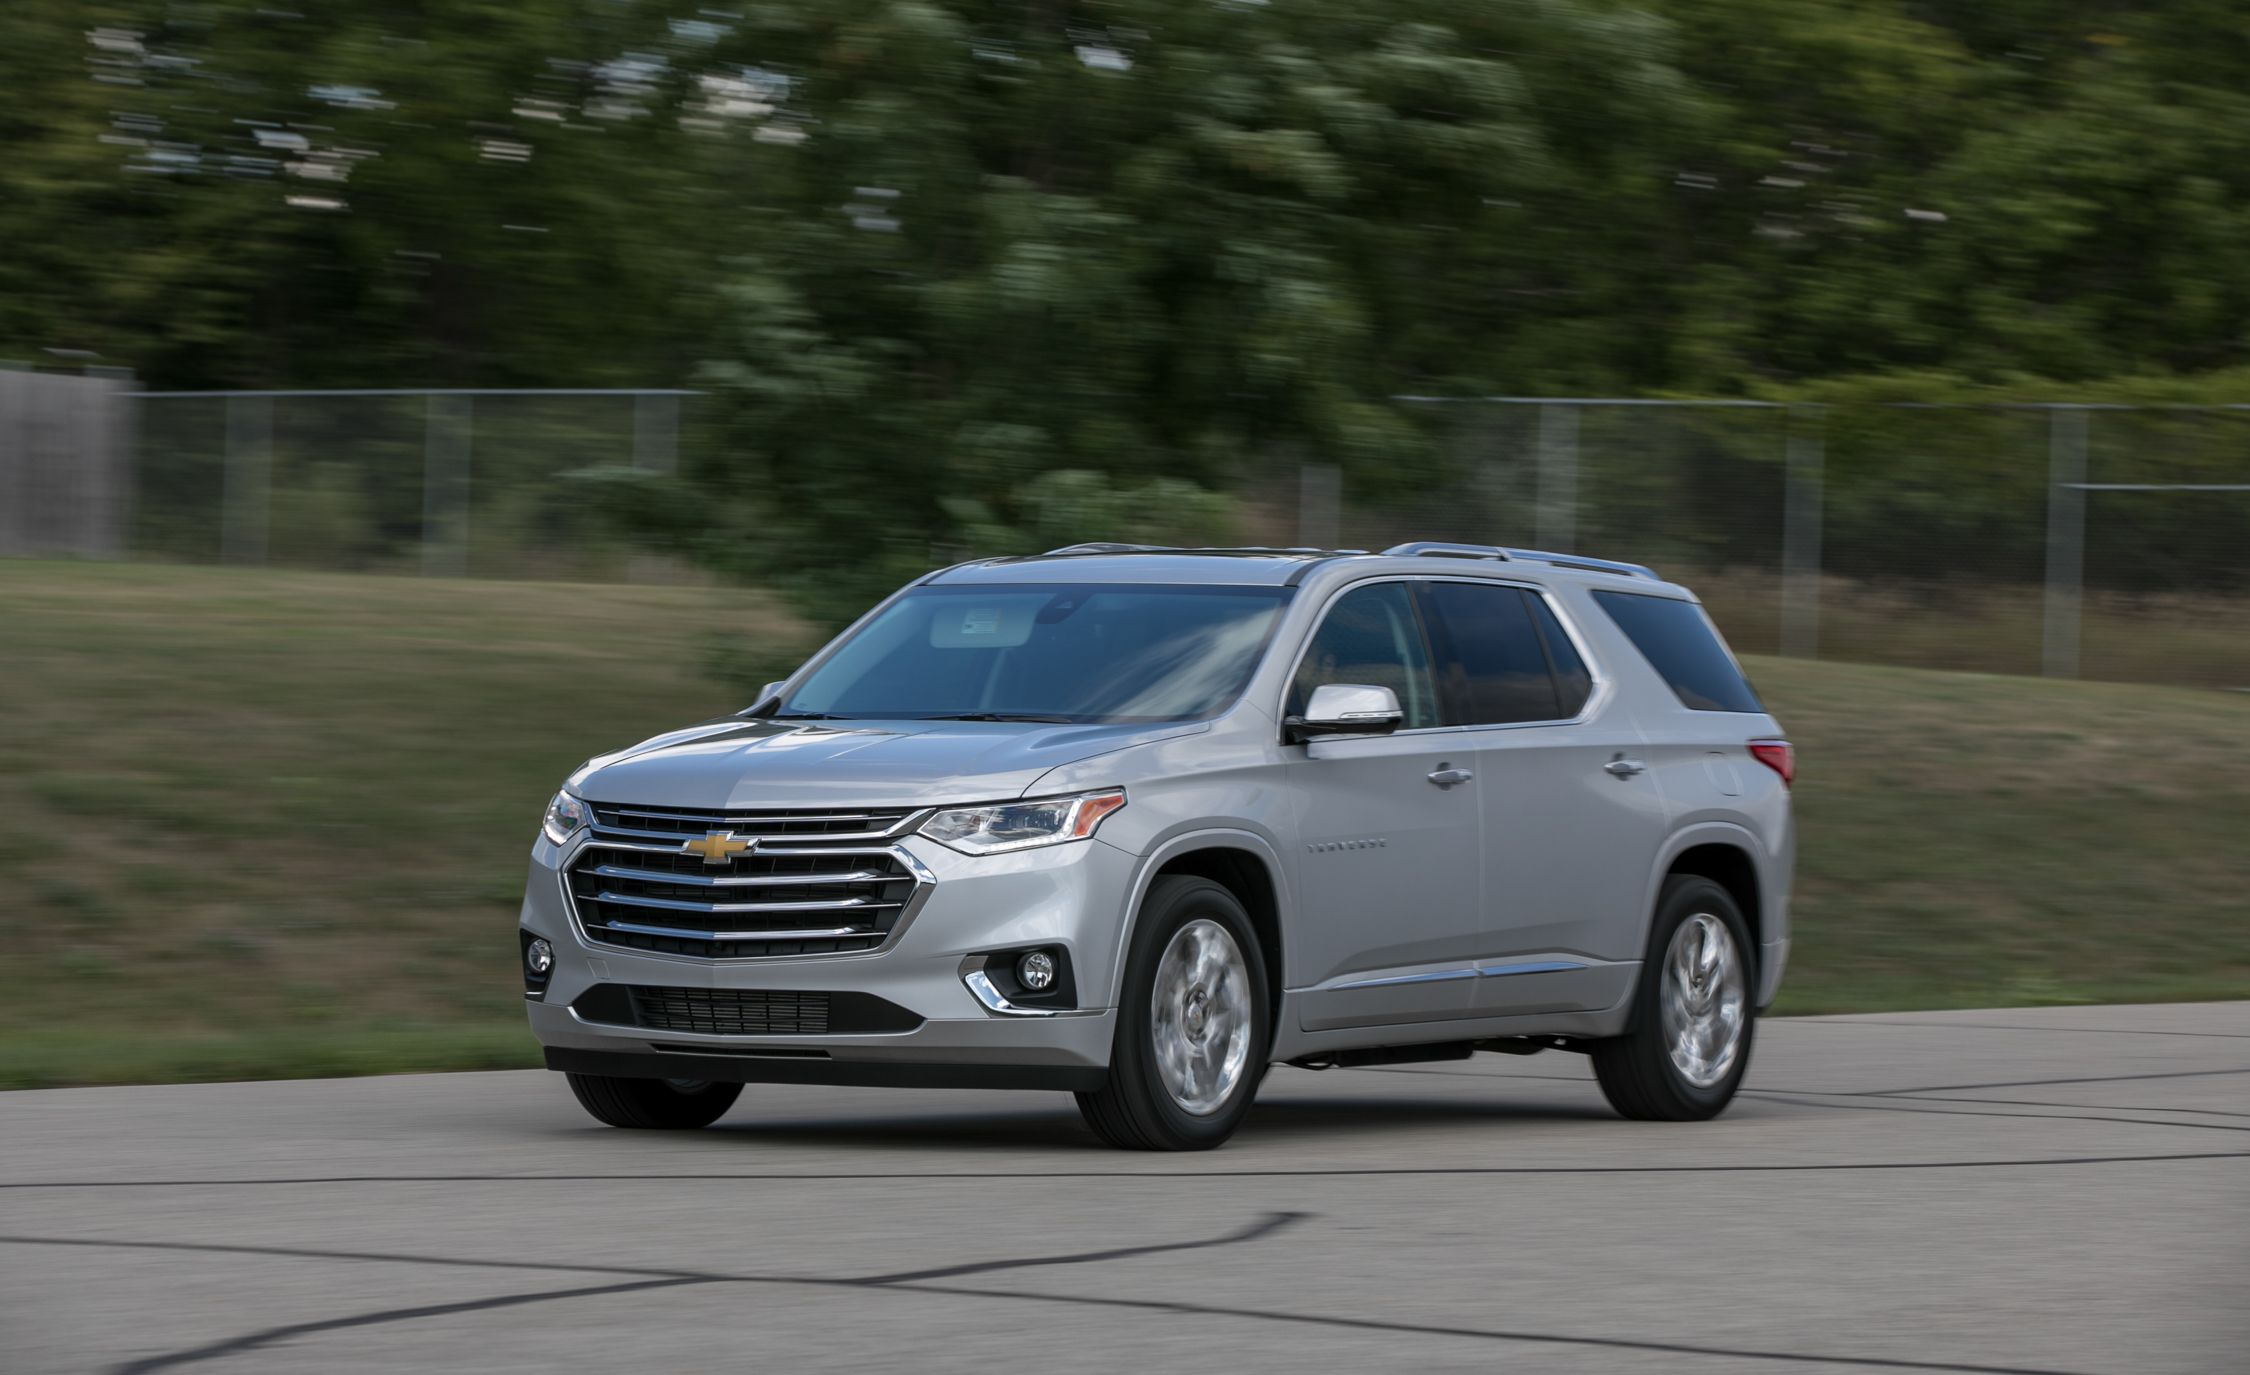 Chevrolet Traverse Reviews | Chevrolet Traverse Price, Photos, and Specs |  Car and Driver